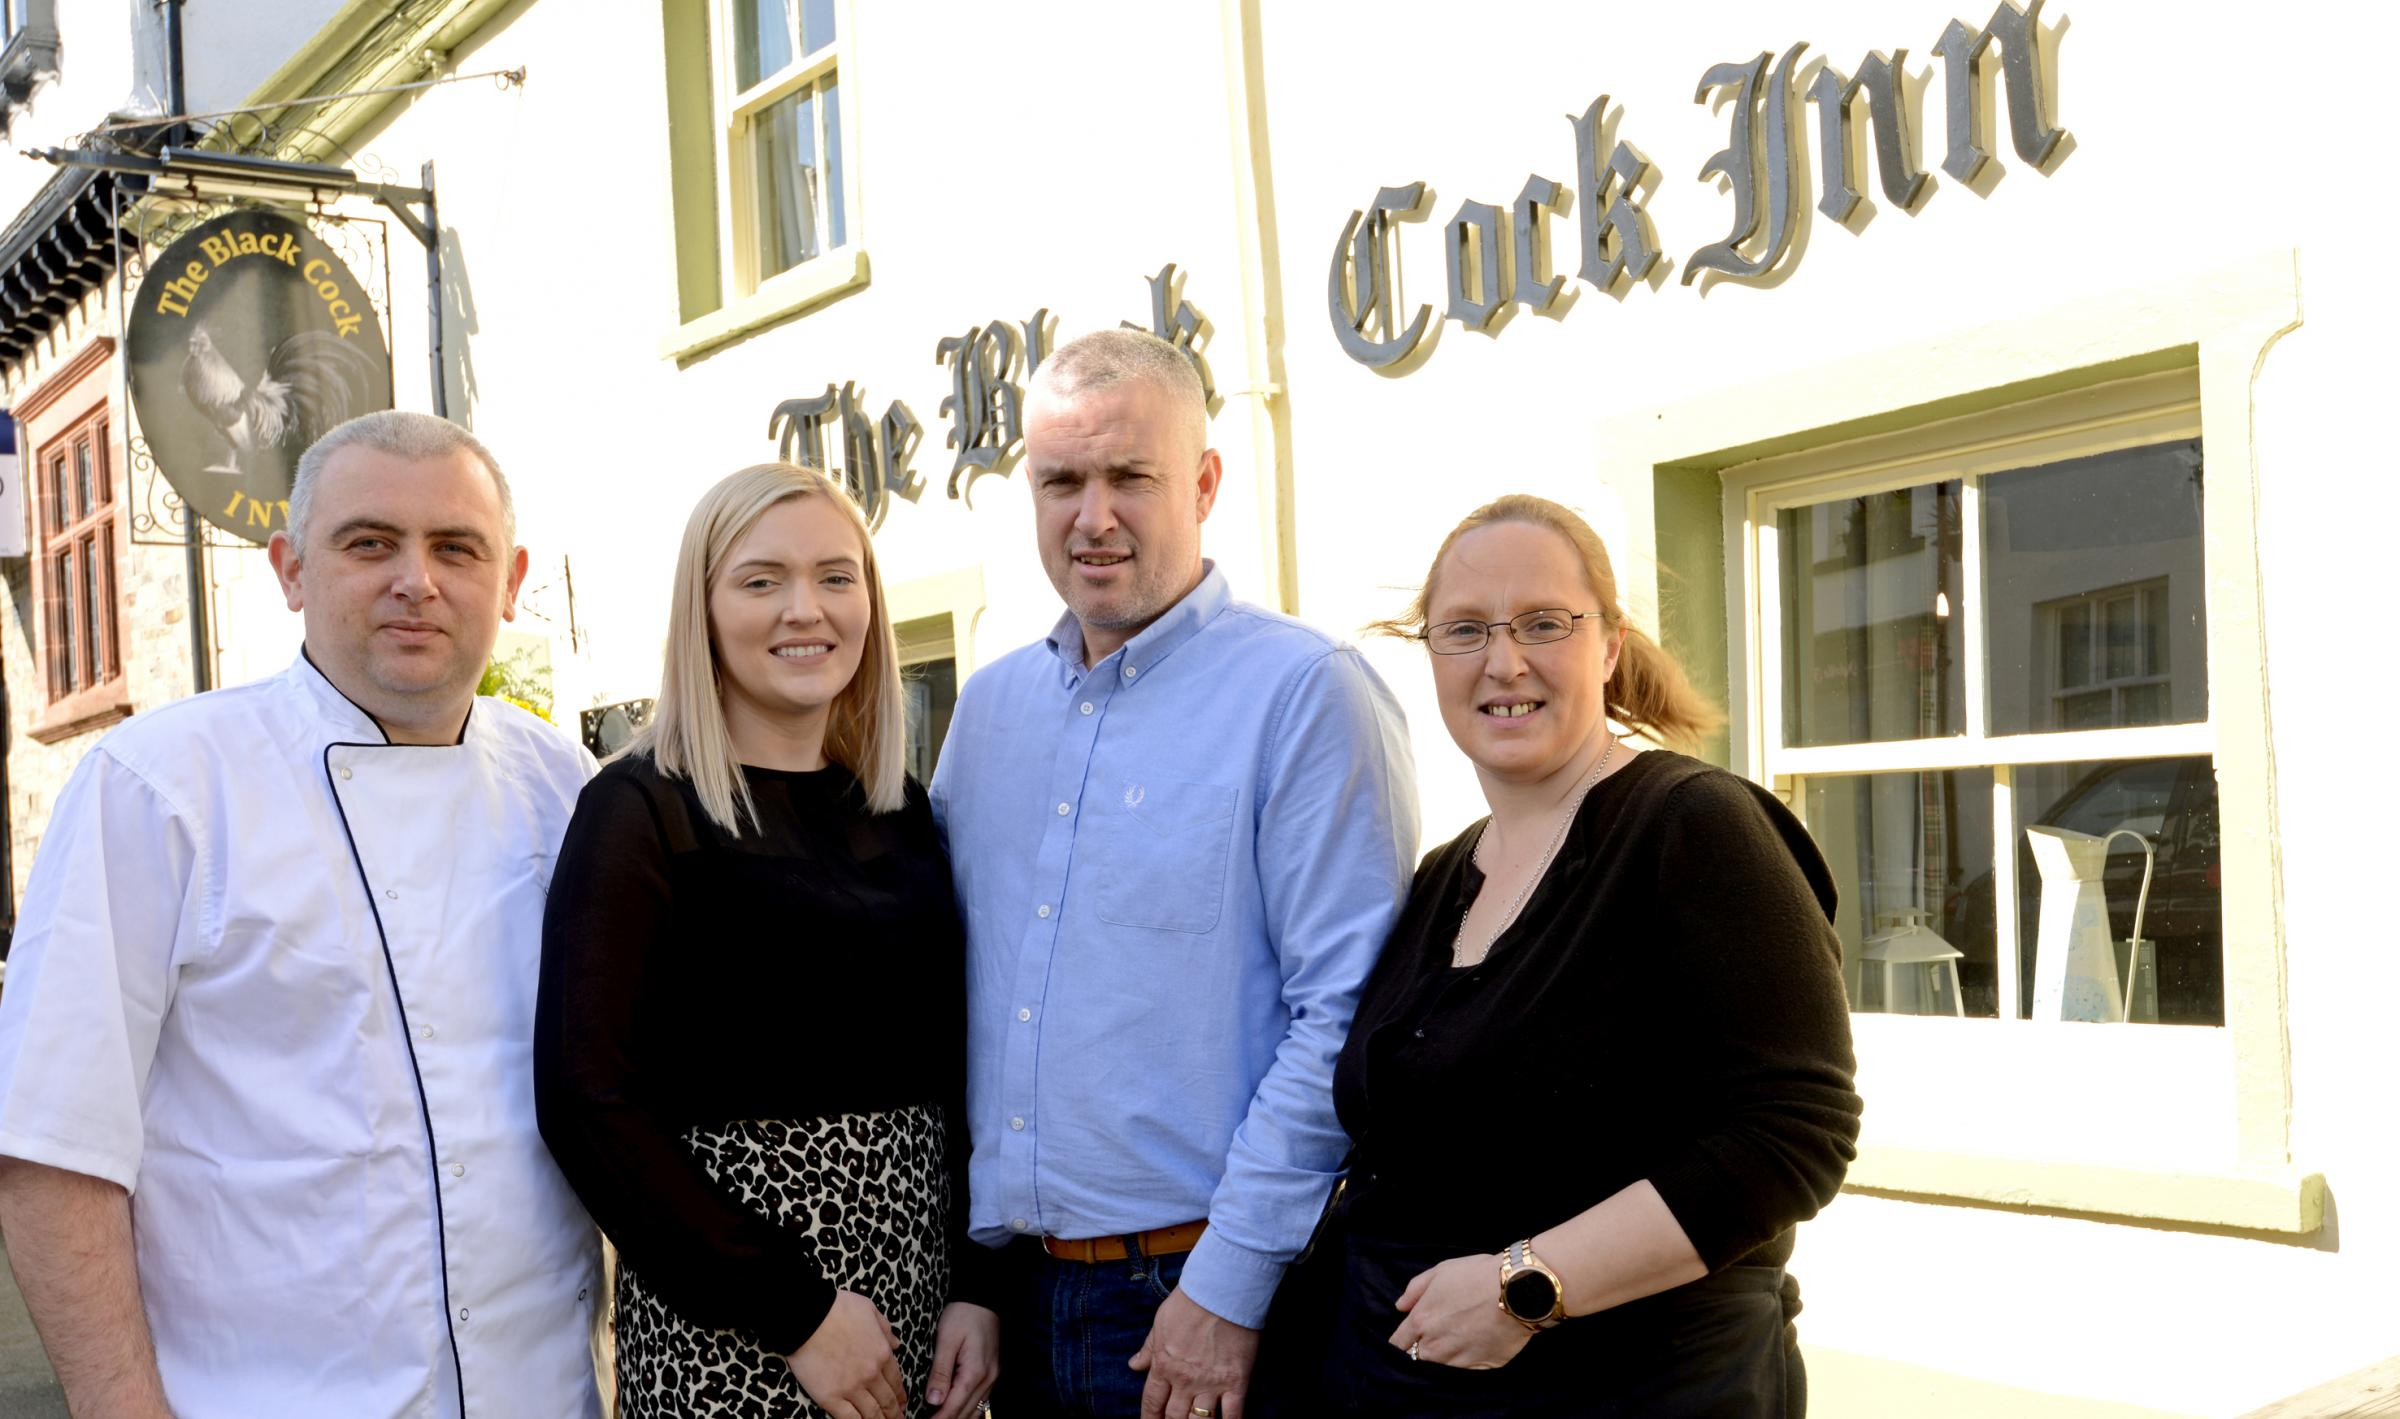 Chef Rob Phillips, Lakeland Inns owners Kirsty and Scott Mackenzie, and manager Hayley Stead outside The Black Cock Inn, Broughton-in-Furness, Cumbria.